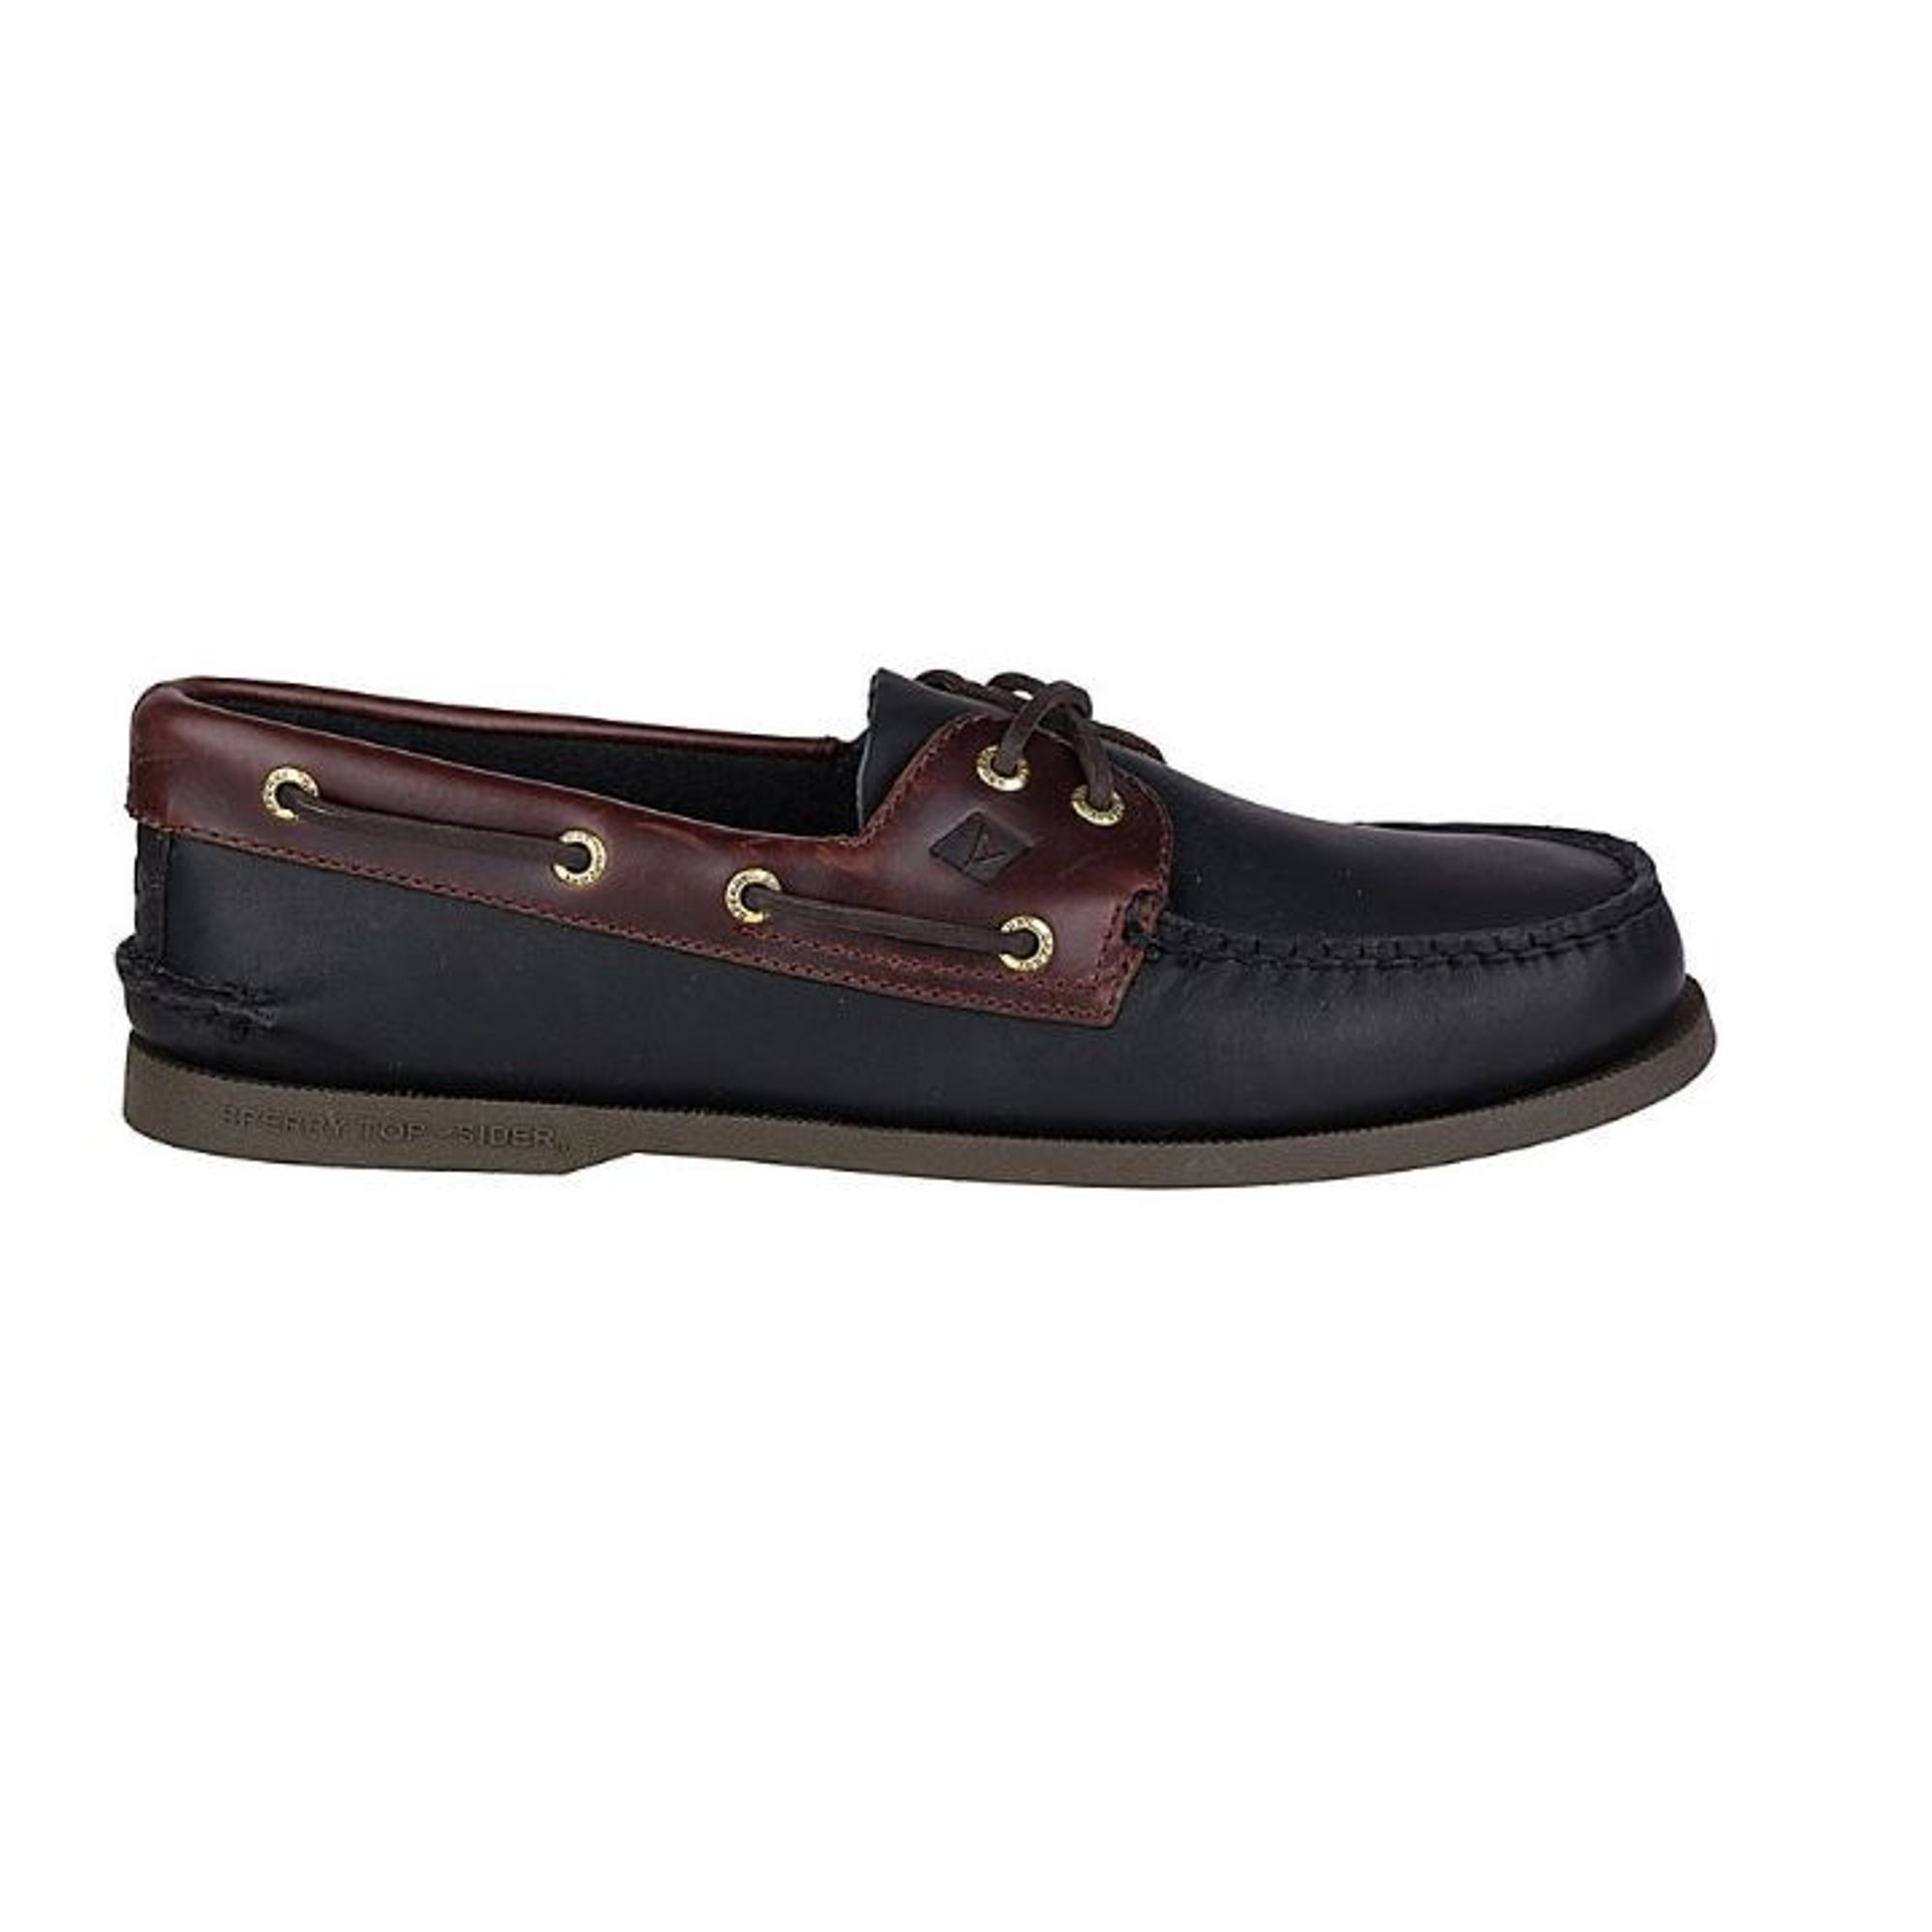 Para Sperry Top Hombre Top Sider Sperry uTFJl3K1c